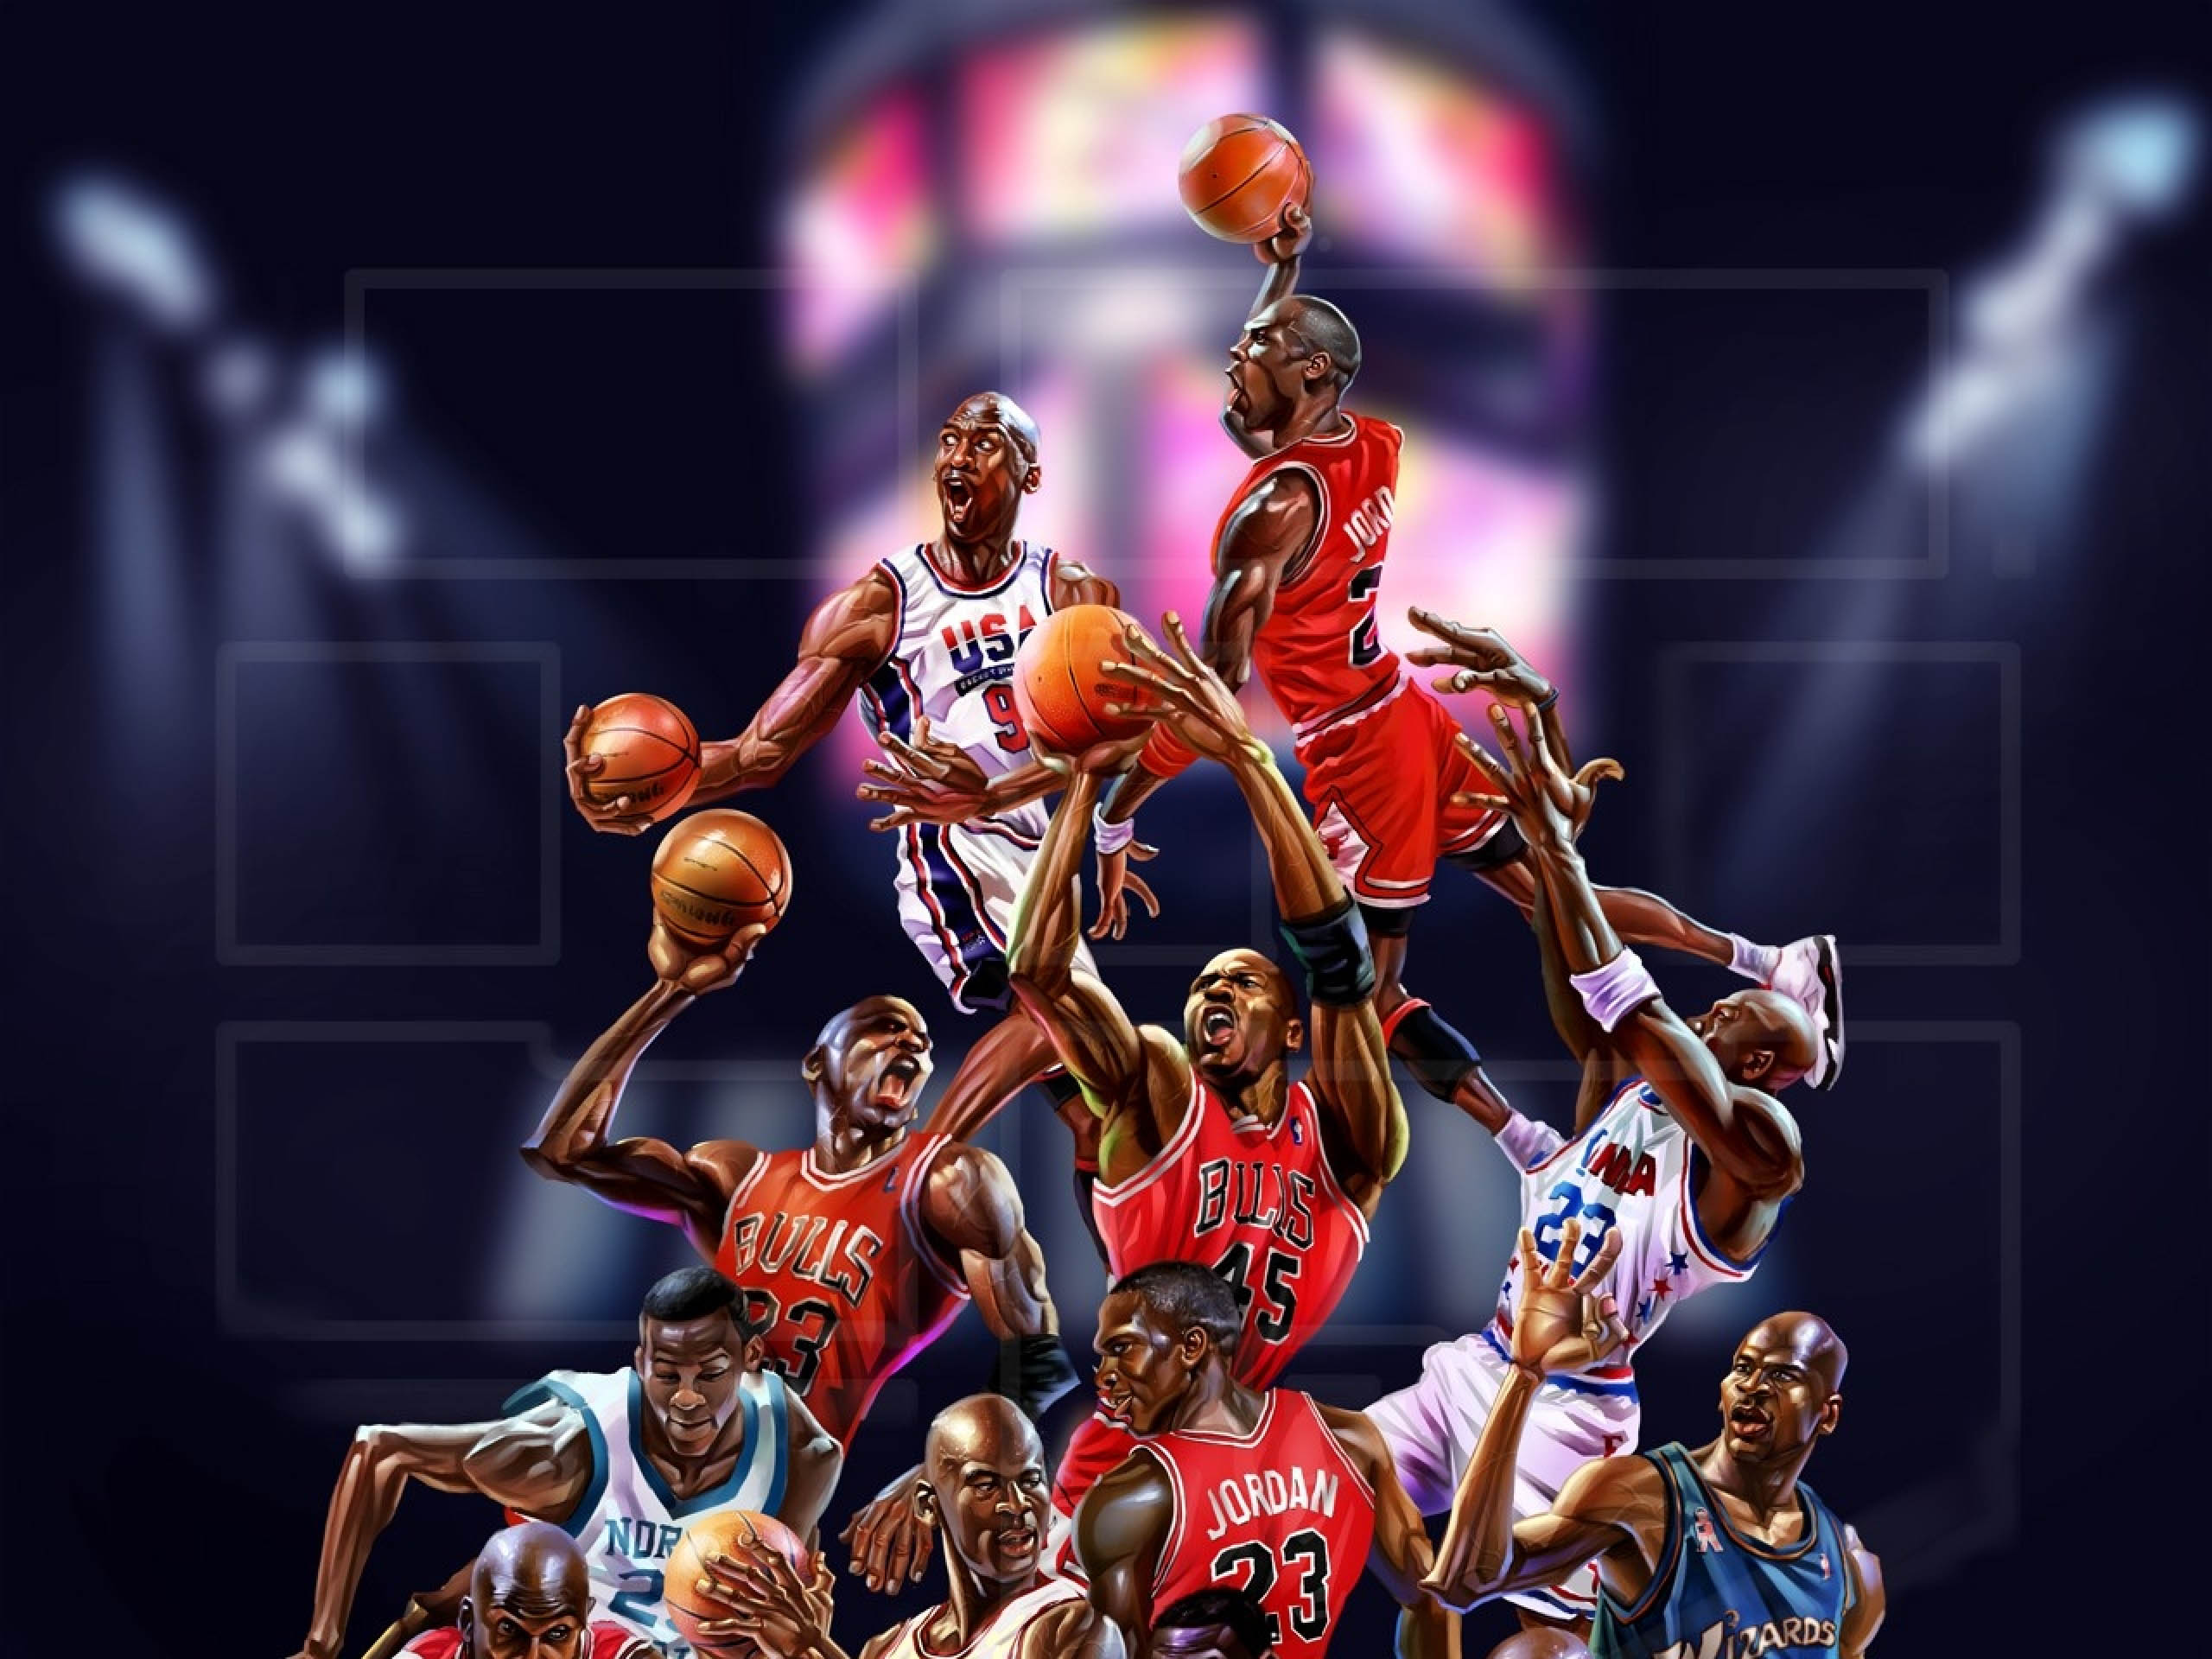 michael jordan art | sports hd 4k wallpapers